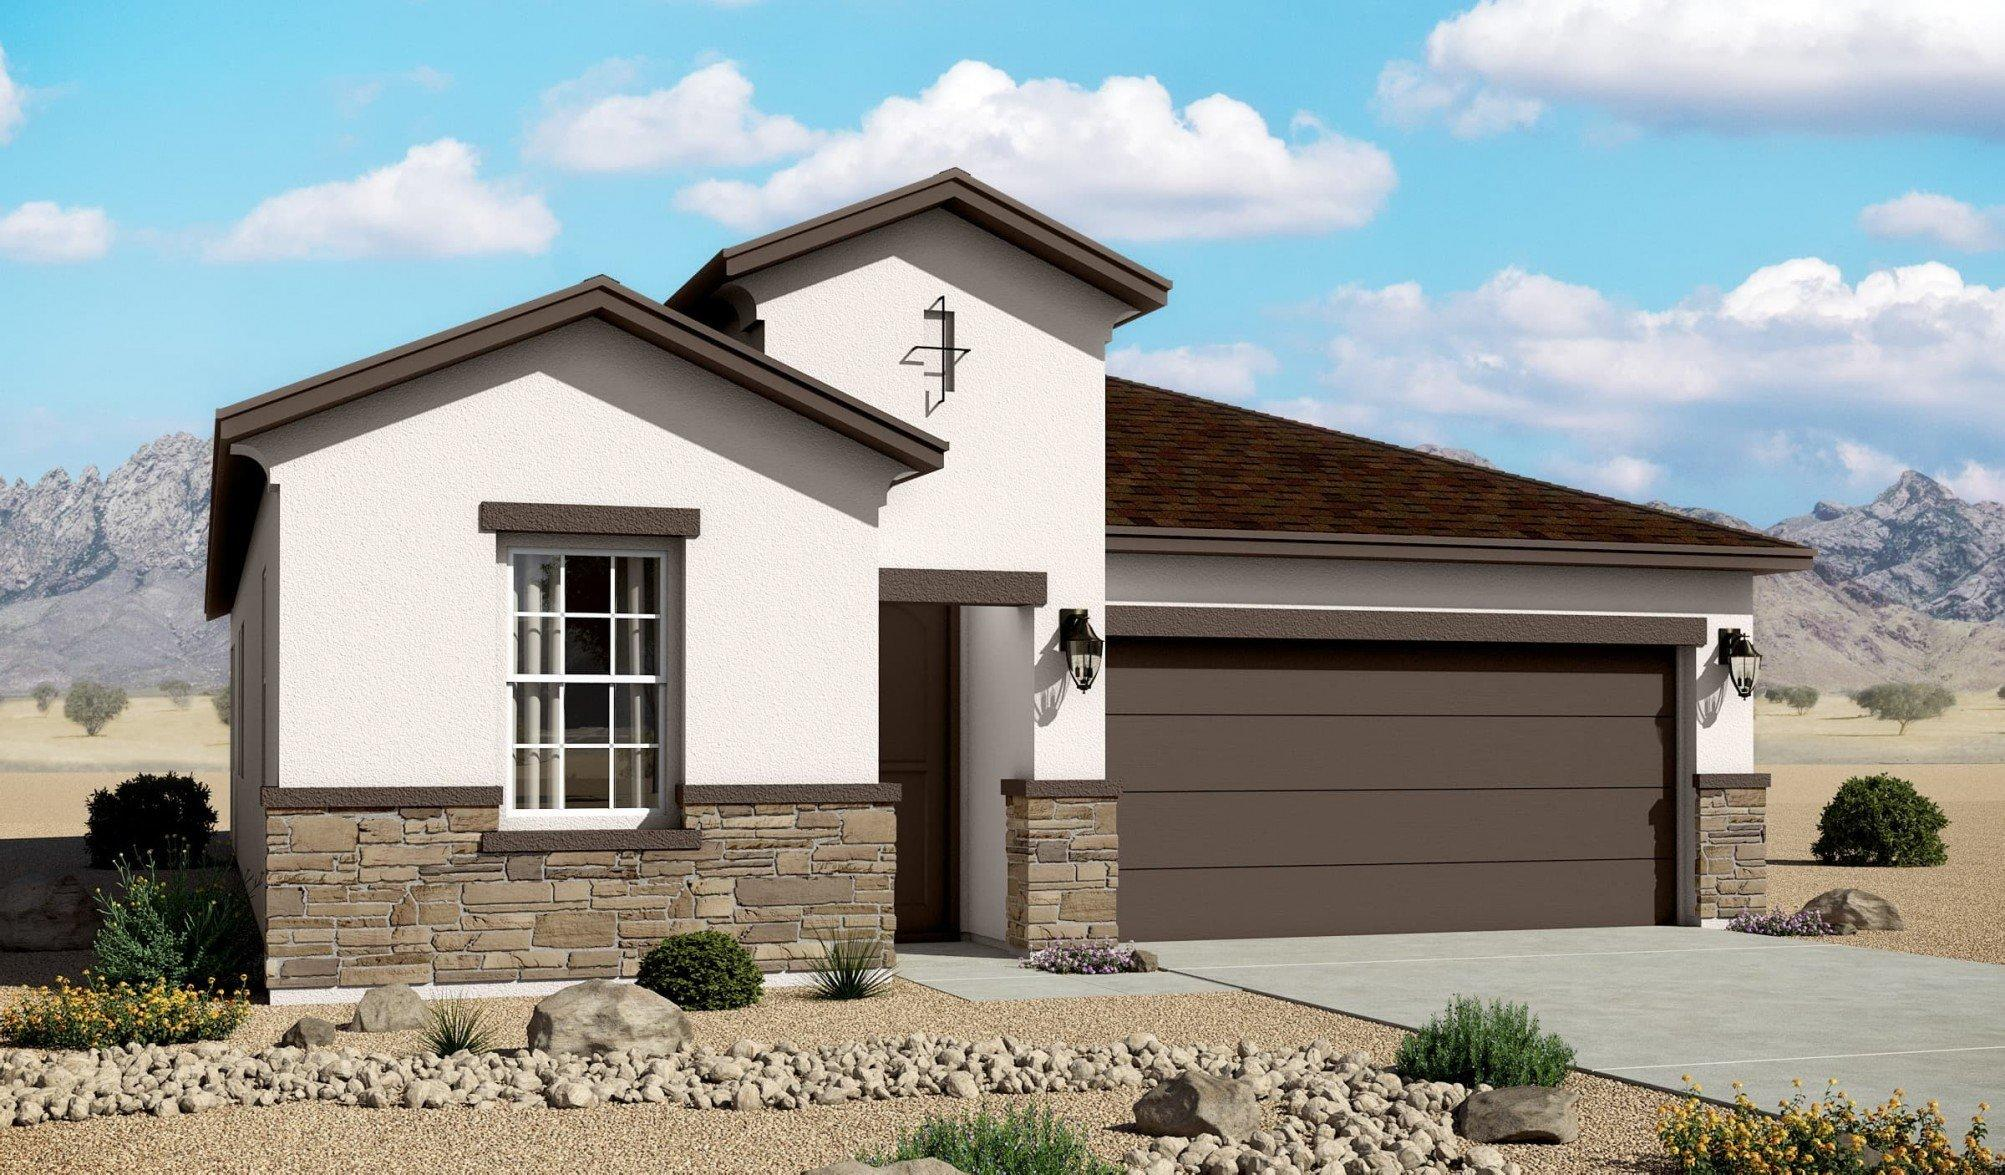 Estimated completion January 2021  Beautiful Hakes Brothers brand new home in Valle Prado that features 1752 sq ft with 4 bedrooms and large great room with beautiful features throughout! Gourmet kitchen with pot filler!